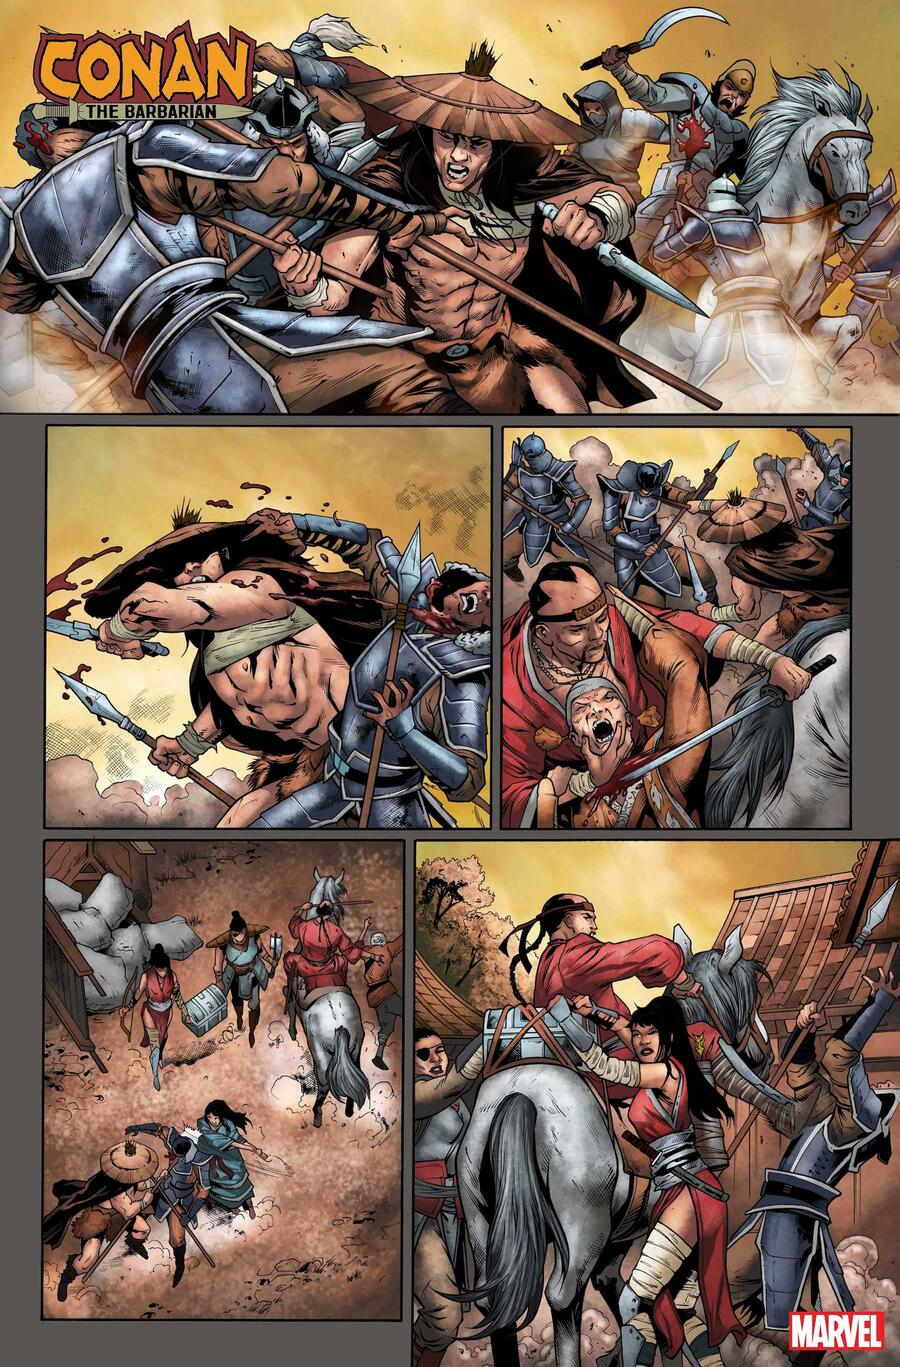 CONAN THE BARBARIAN #20 pencils by Cory Smith, inks by Roberto Poggi, and colors by Israel Silva